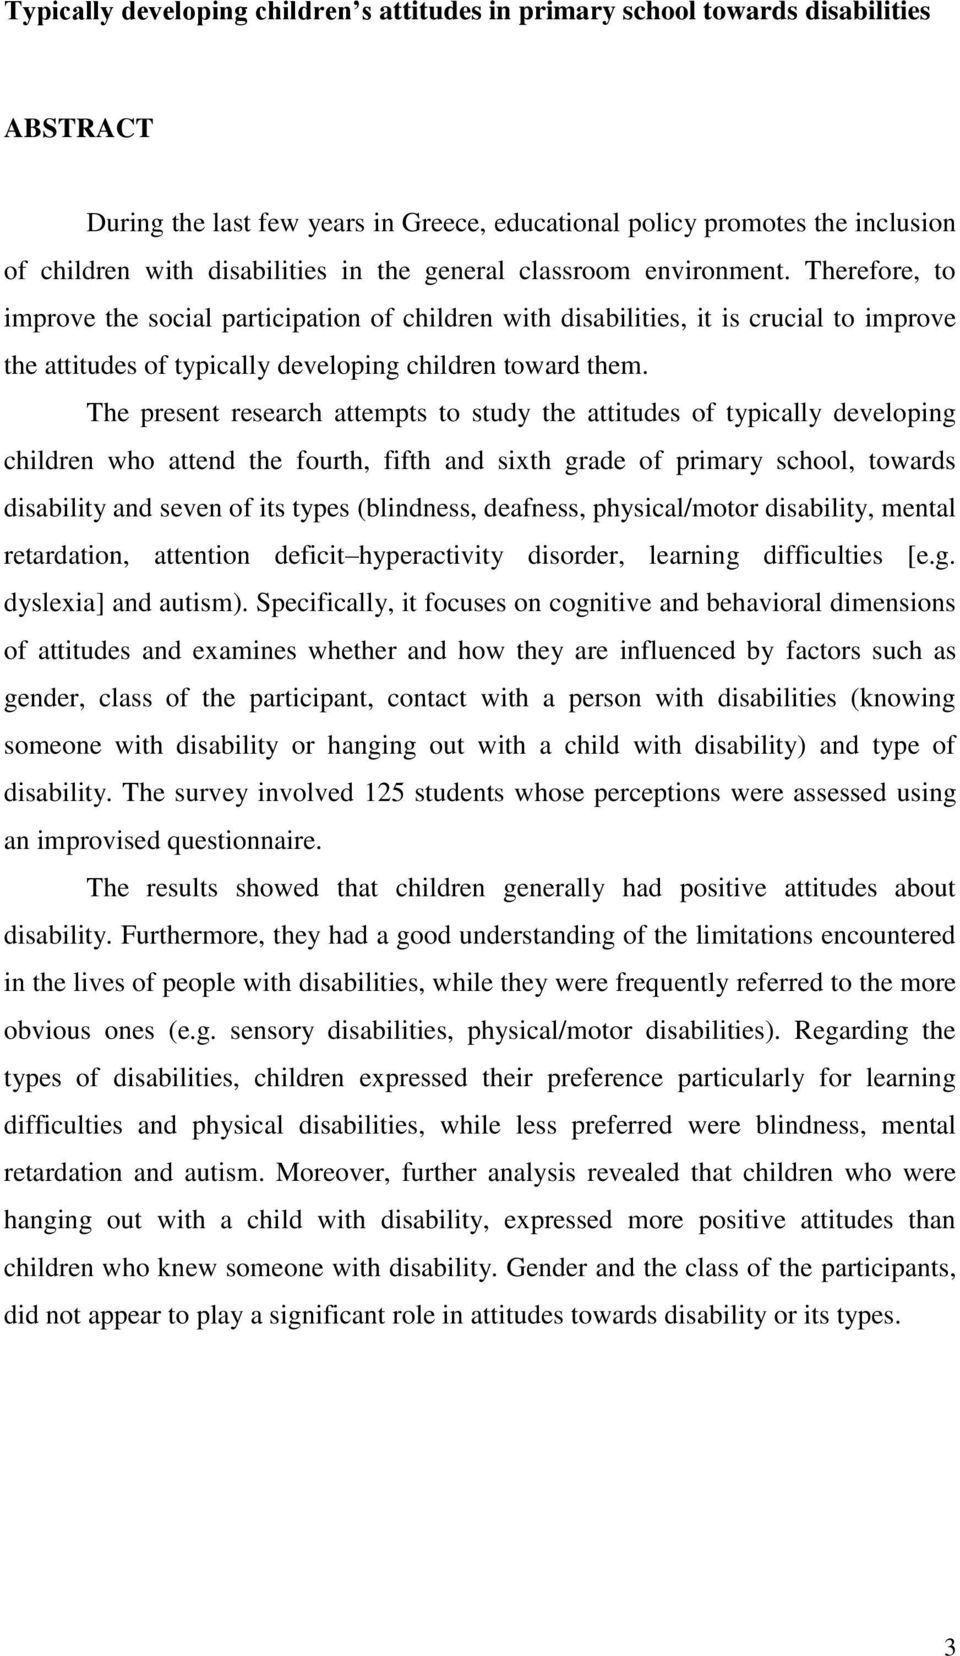 The present research attempts to study the attitudes of typically developing children who attend the fourth, fifth and sixth grade of primary school, towards disability and seven of its types